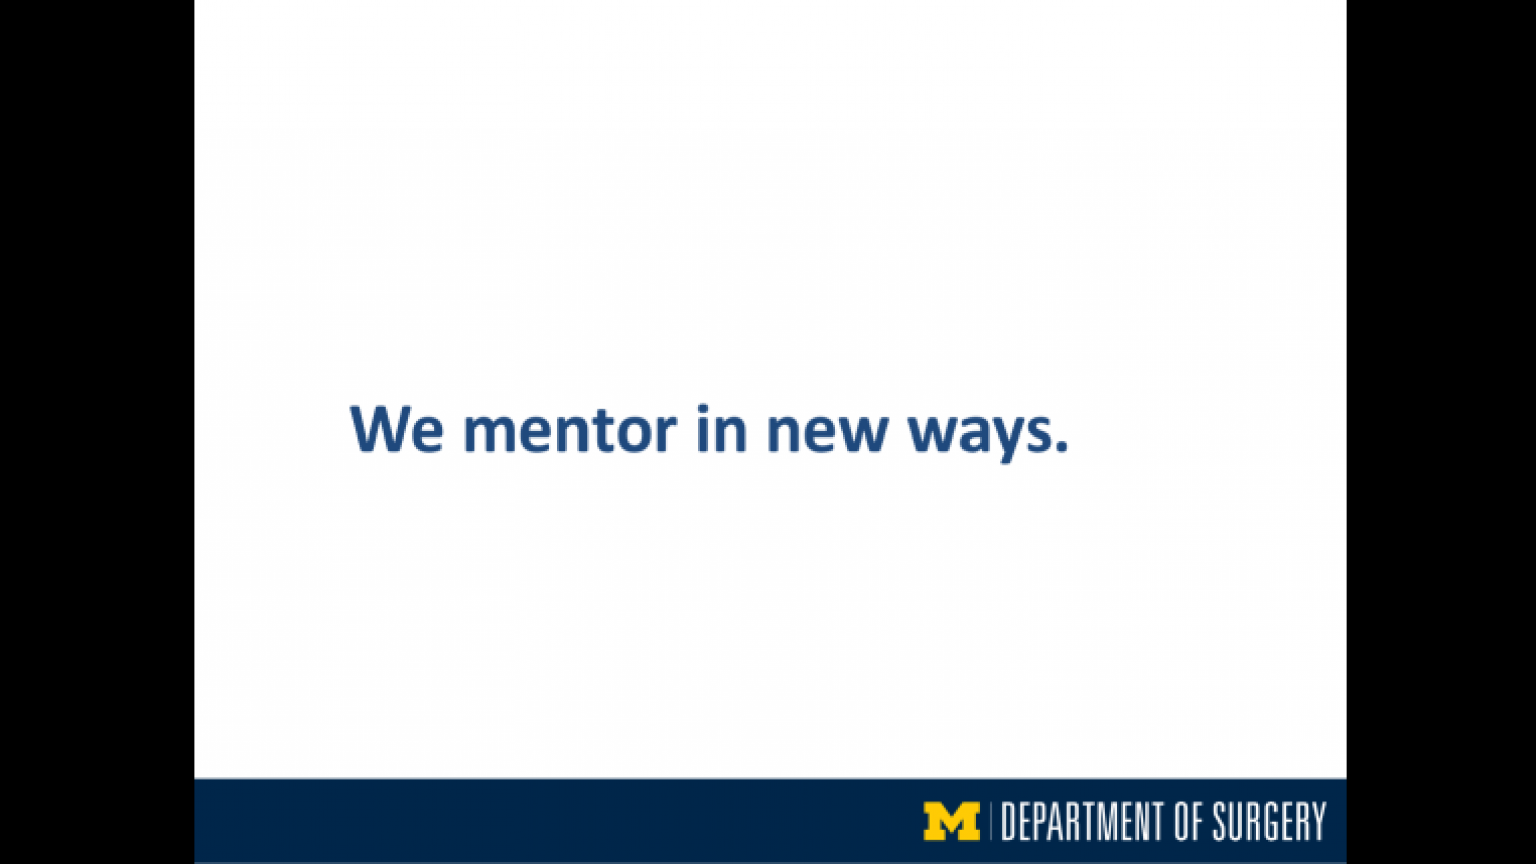 """""""We mentor in new ways"""" - eleventh slide of """"This Is What We Stand For"""" presentation"""